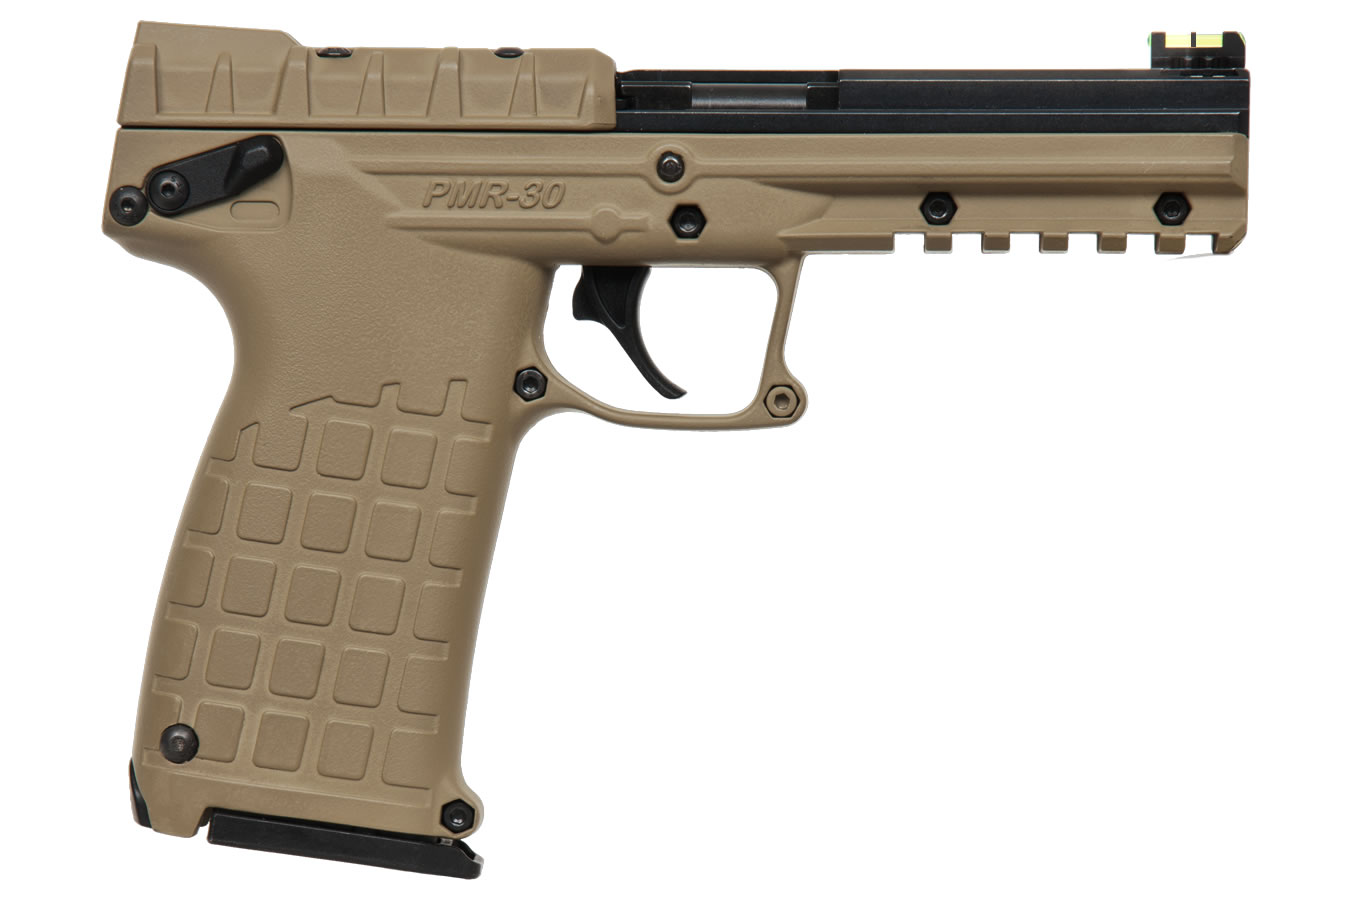 PMR-30 22WMR FLAT DARK EARTH PISTOL